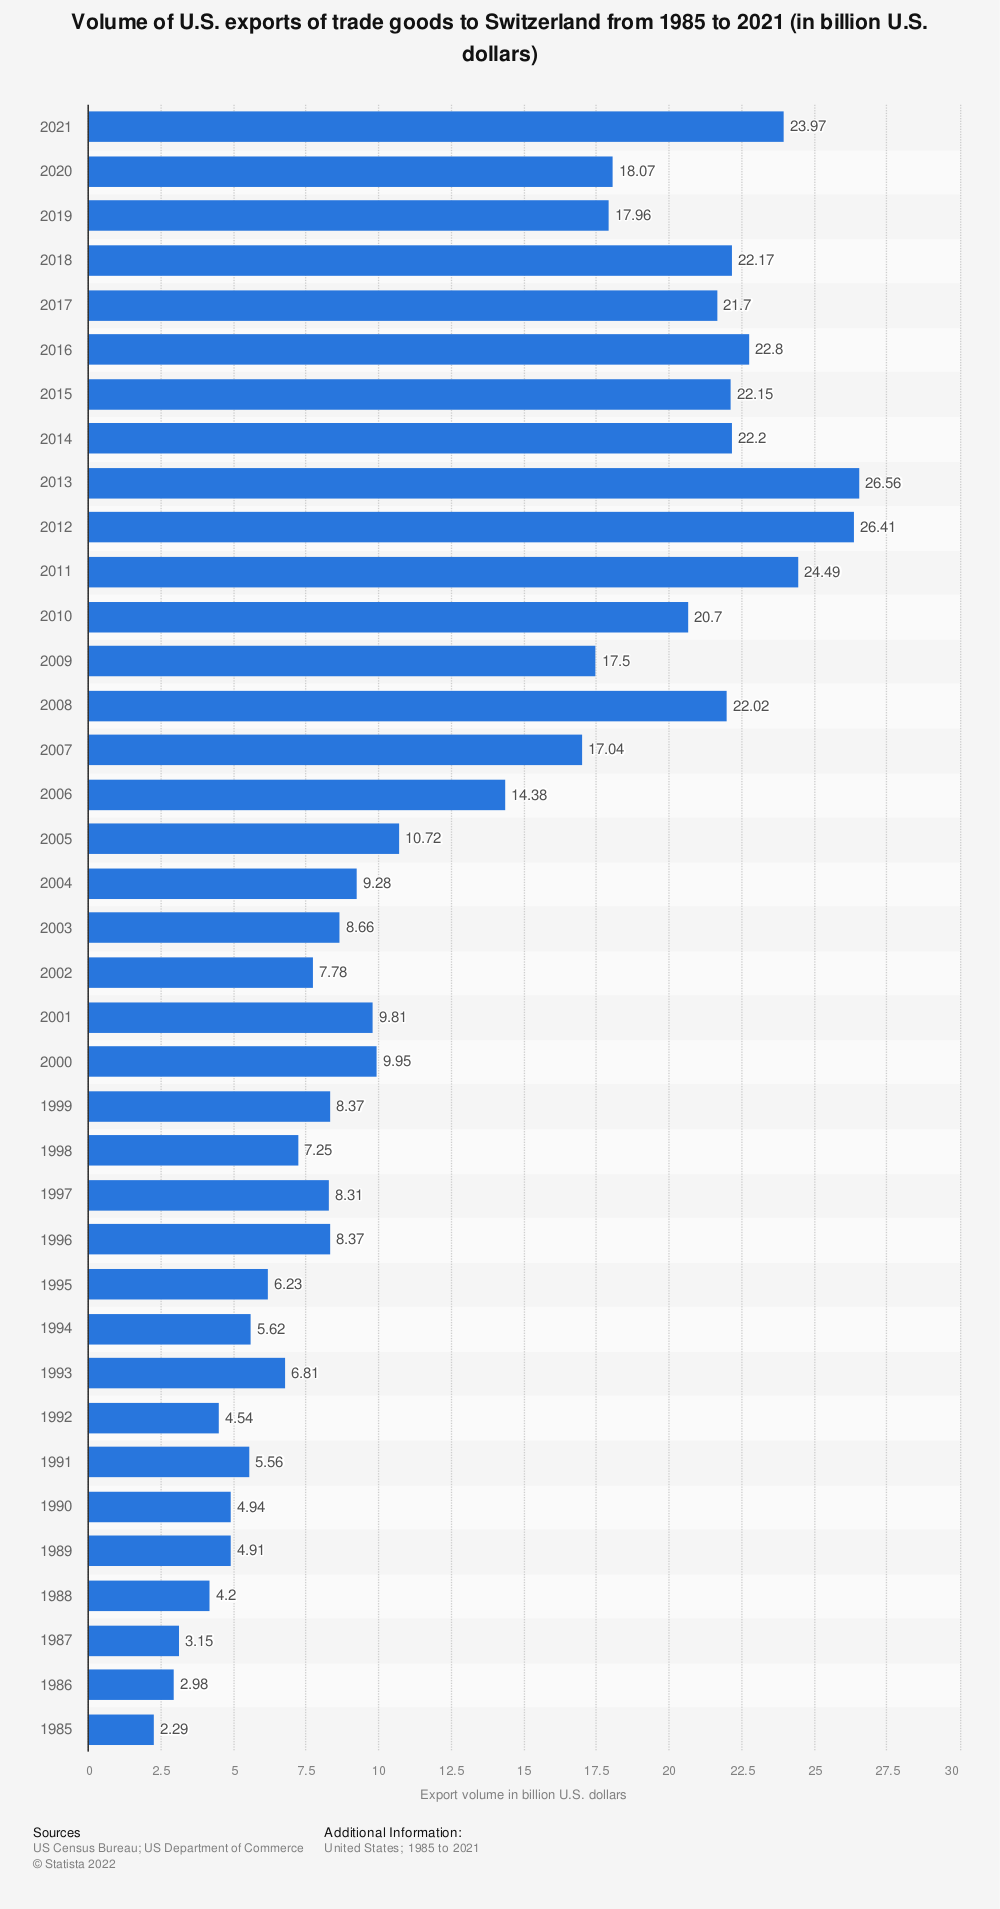 Statistic: Volume of U.S. exports of trade goods to Switzerland from 1985 to 2018 (in billion U.S. dollars) | Statista